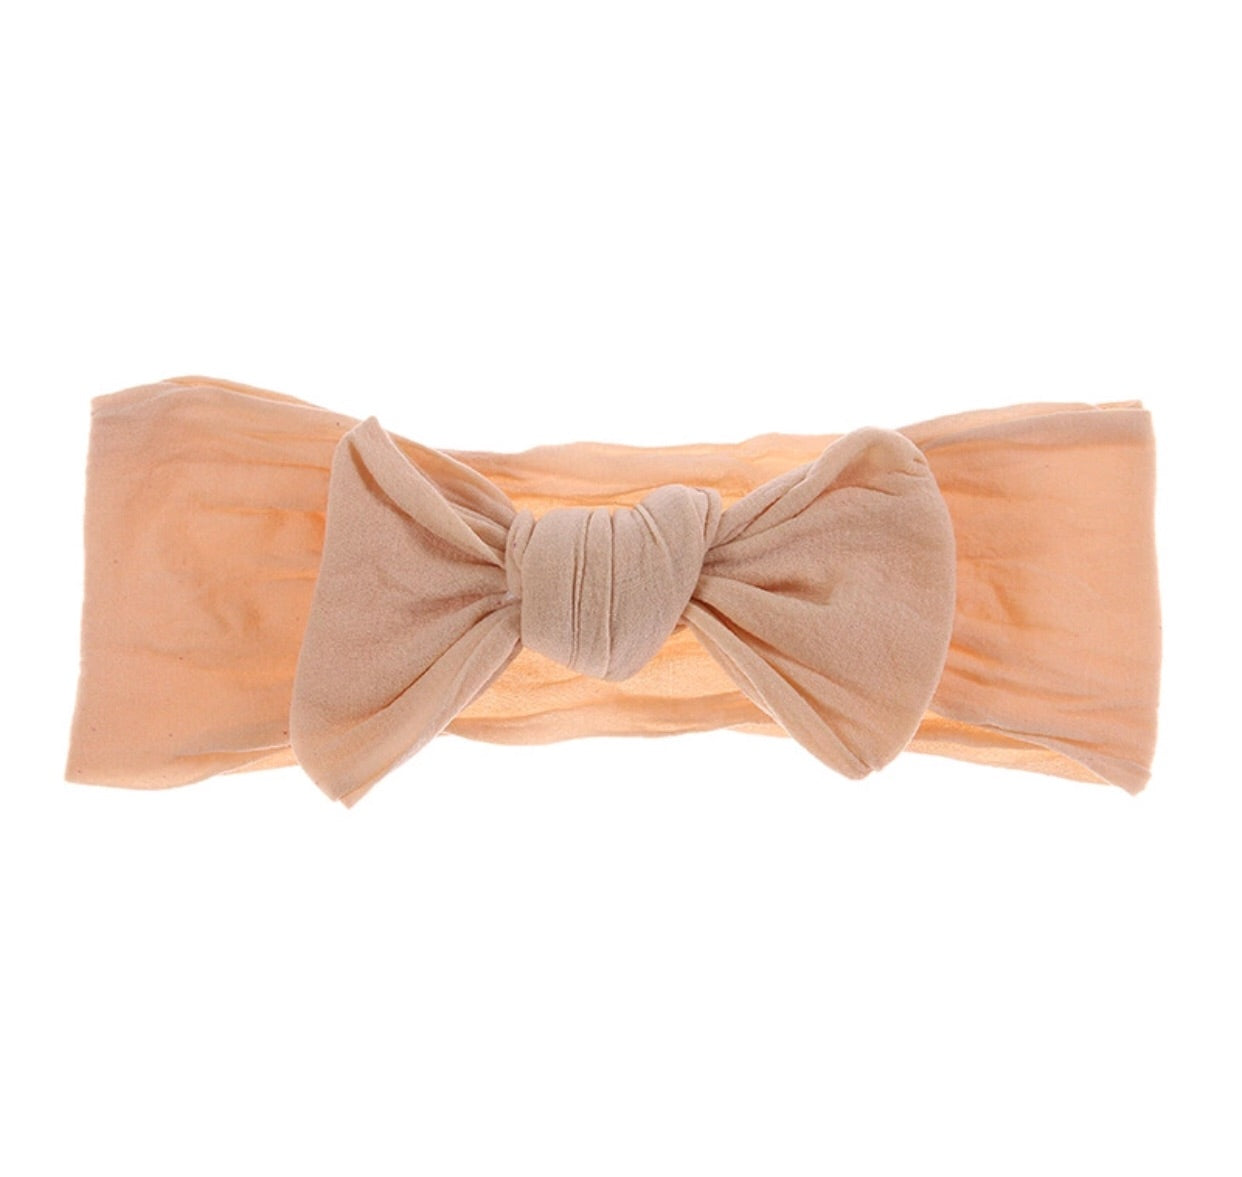 Tied Knot Nylon Headband - Peach - shabbyflowers.com